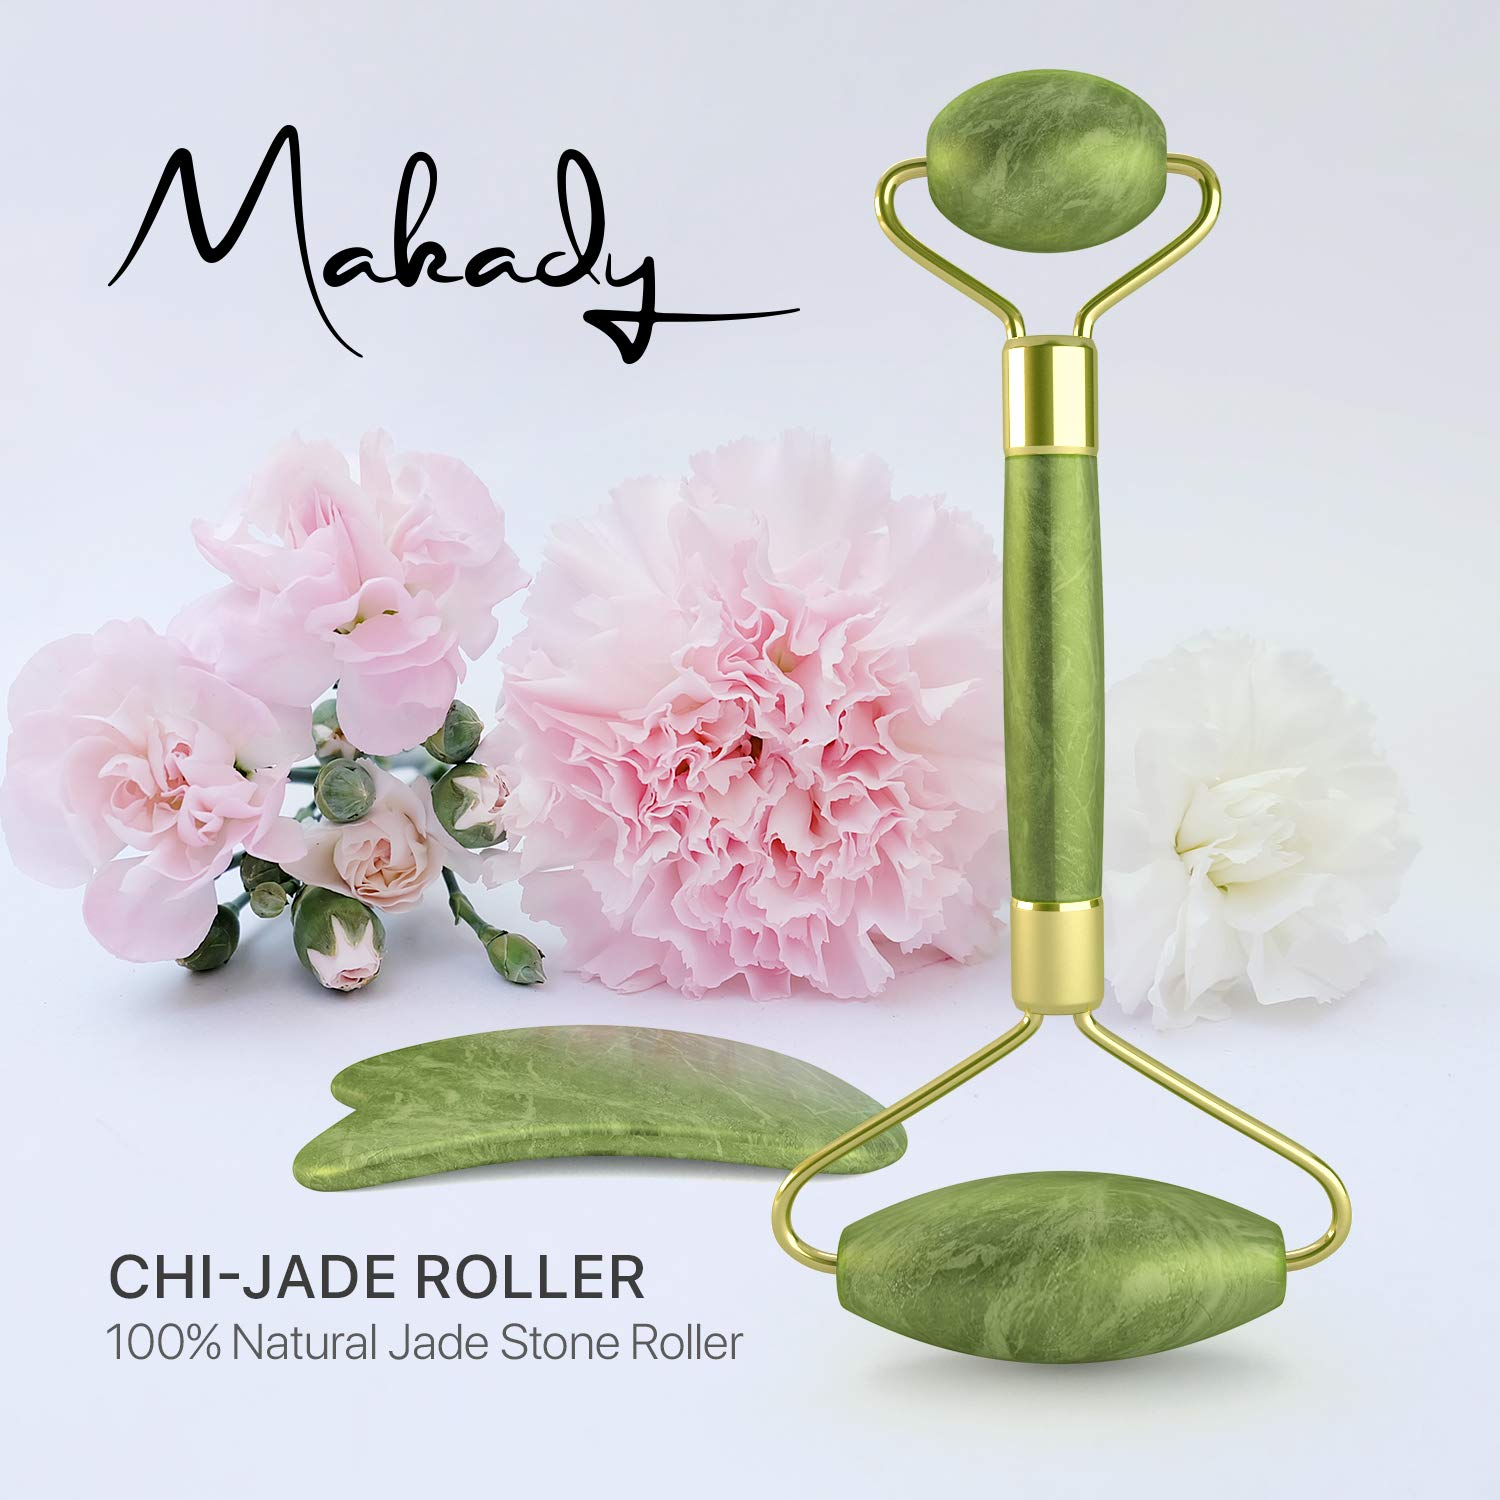 Natural 2 in 1 Jade Roller For Face - Gua Sha Scraping - Aging Wrinkles, Puffiness Facial Skin Massager Treatment Therapy - Premium Authentic Himalayan Jade Stone - Include Bag by MAKADY (Image #2)